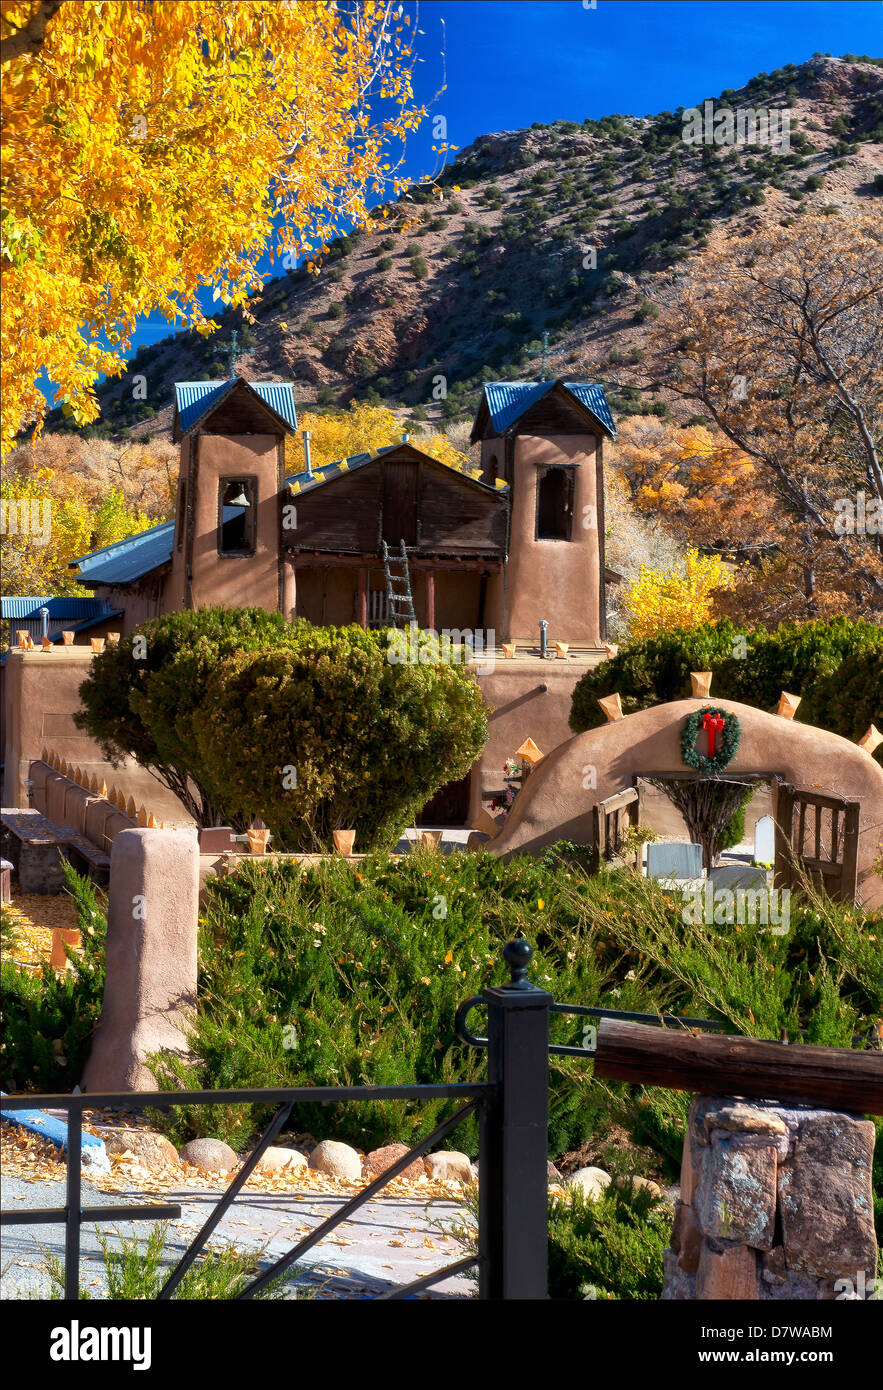 Santuario de Chamayo, a world famous healing site , near Taos New Mexico - Stock Image